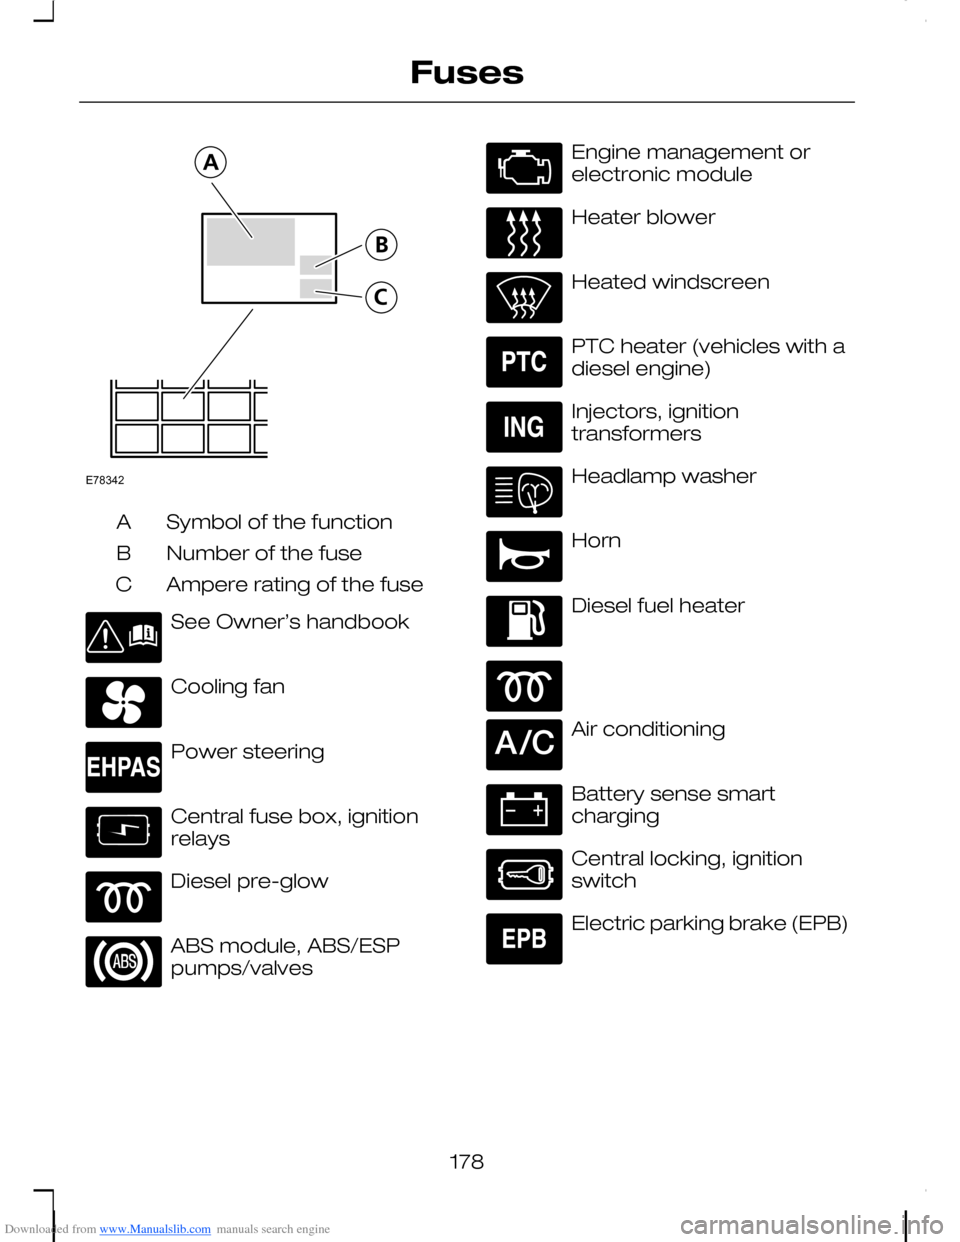 Fuses Ford C Max 2008 1g Owners Manual Central Fuse Box Page 180